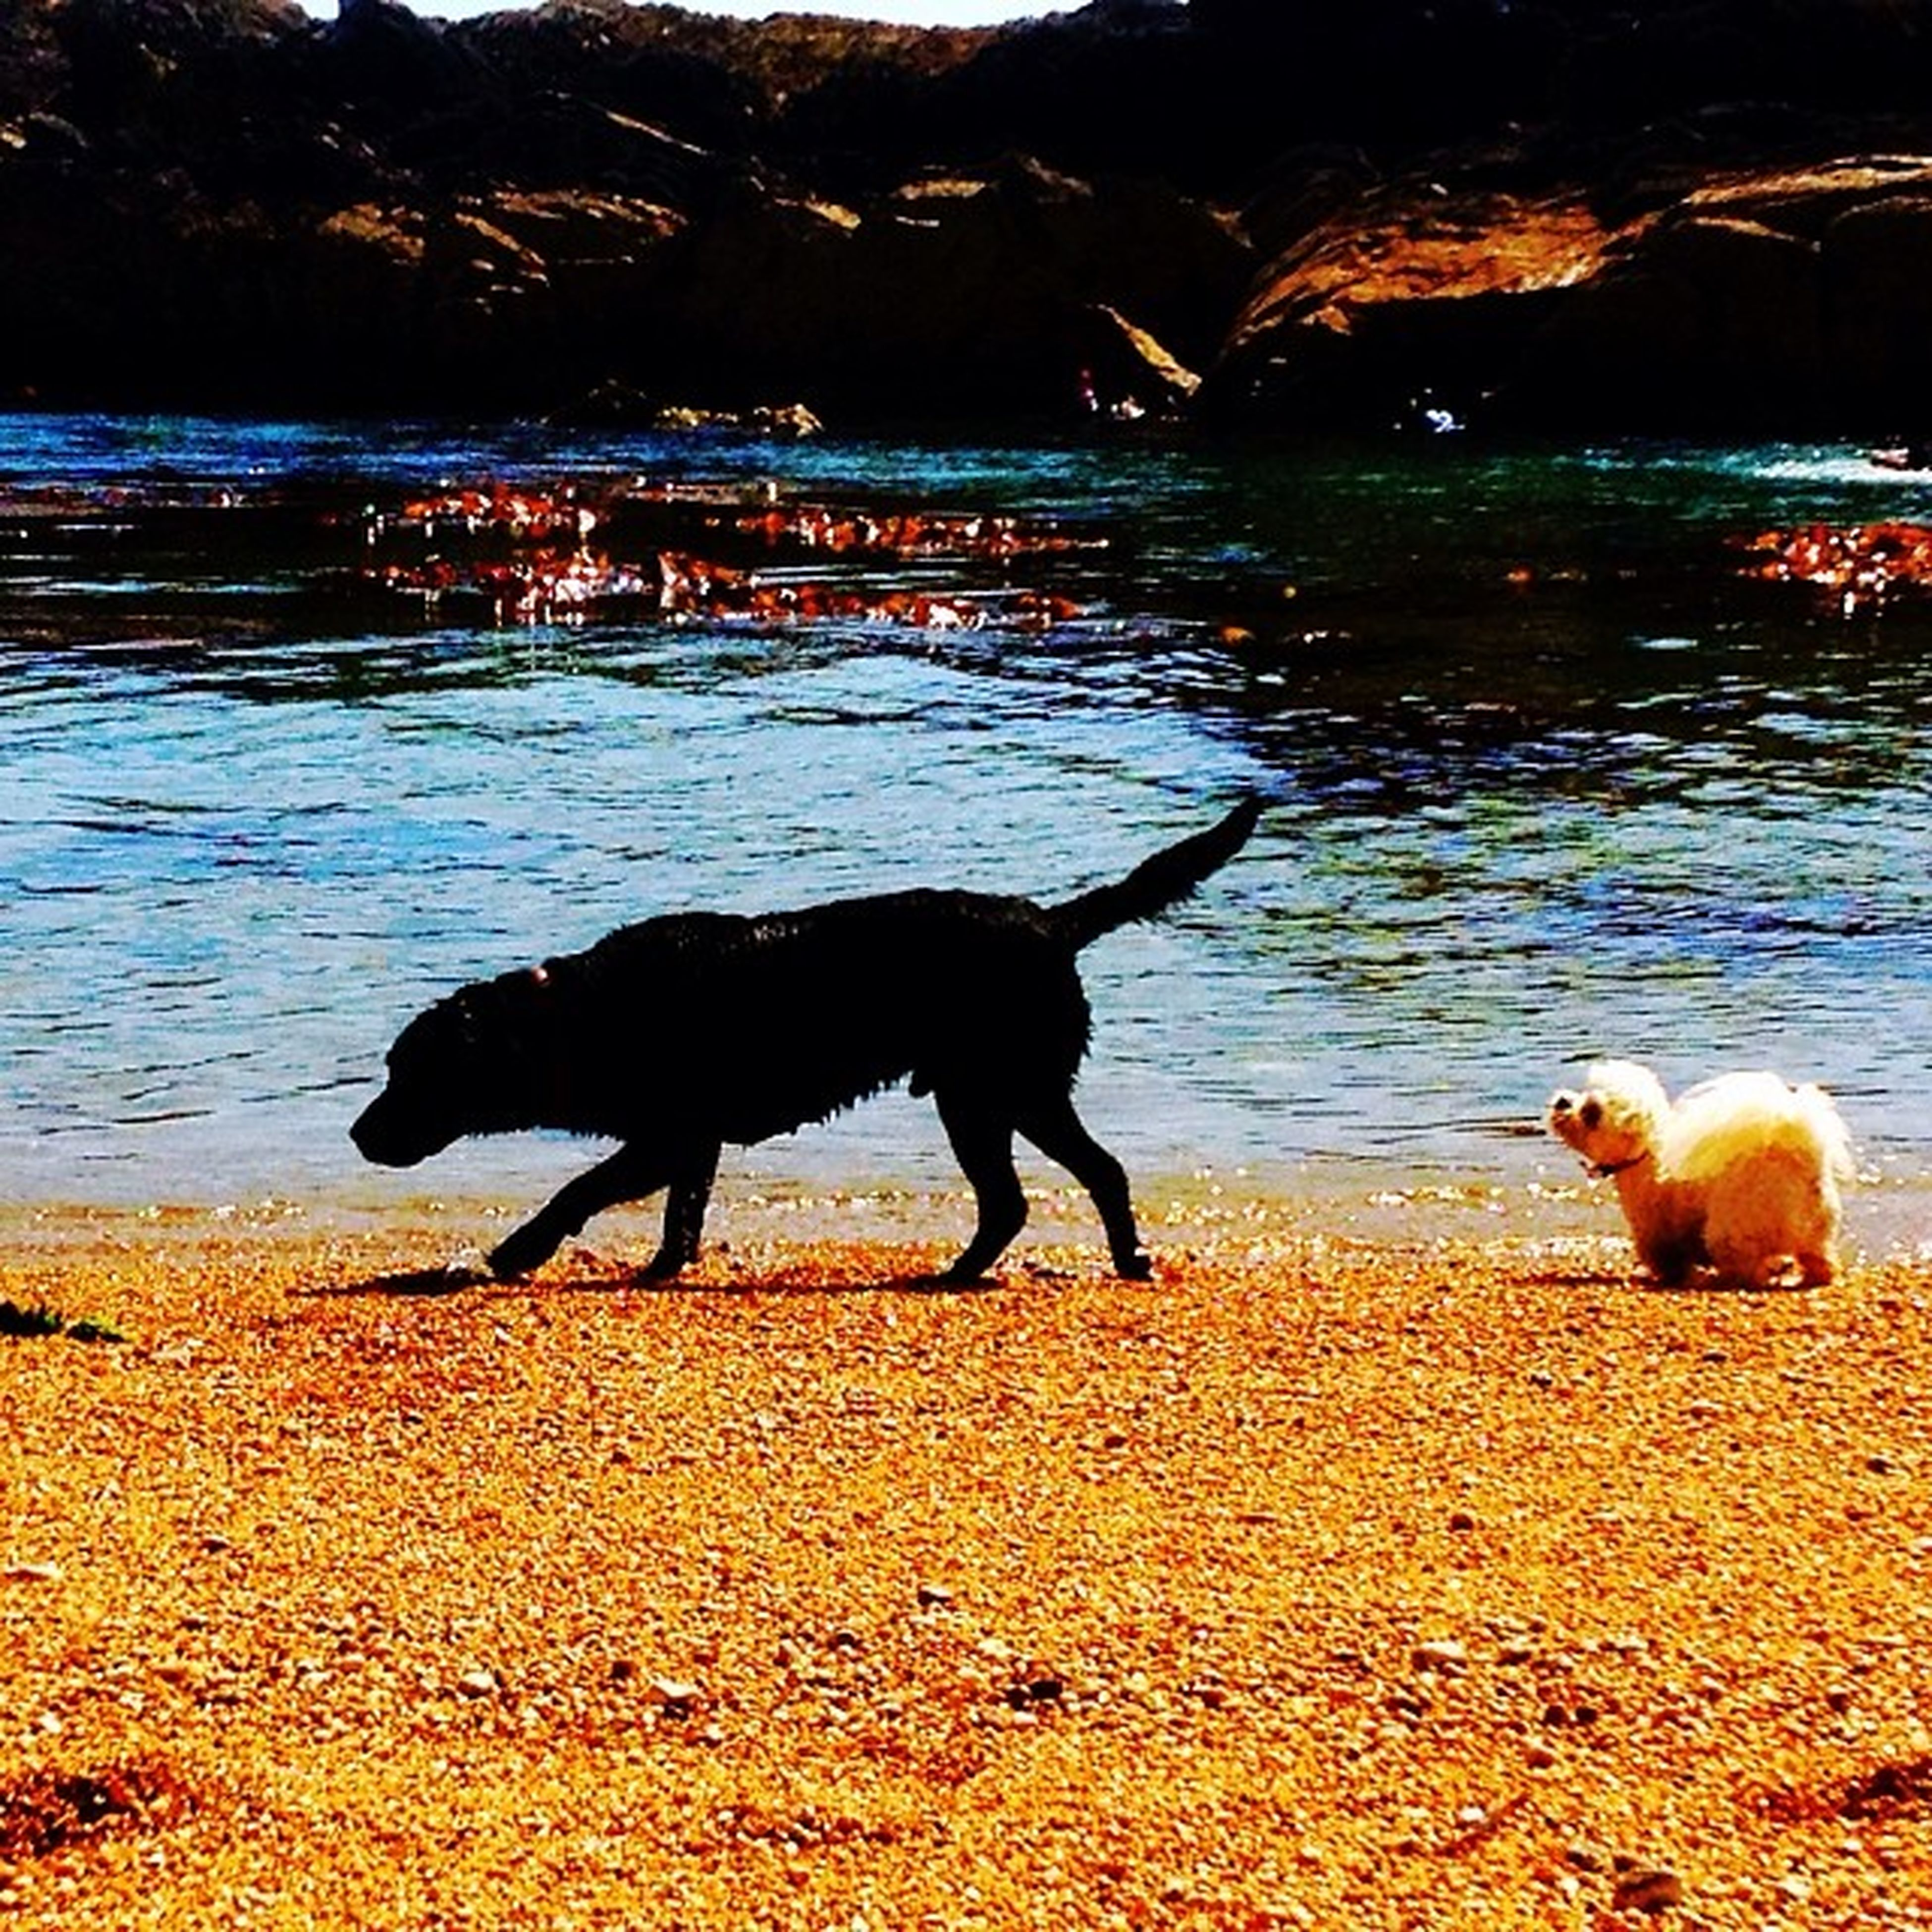 animal themes, water, domestic animals, mammal, black color, pets, beach, two animals, one animal, full length, river, side view, dog, shore, lake, nature, sunlight, outdoors, riverbank, standing